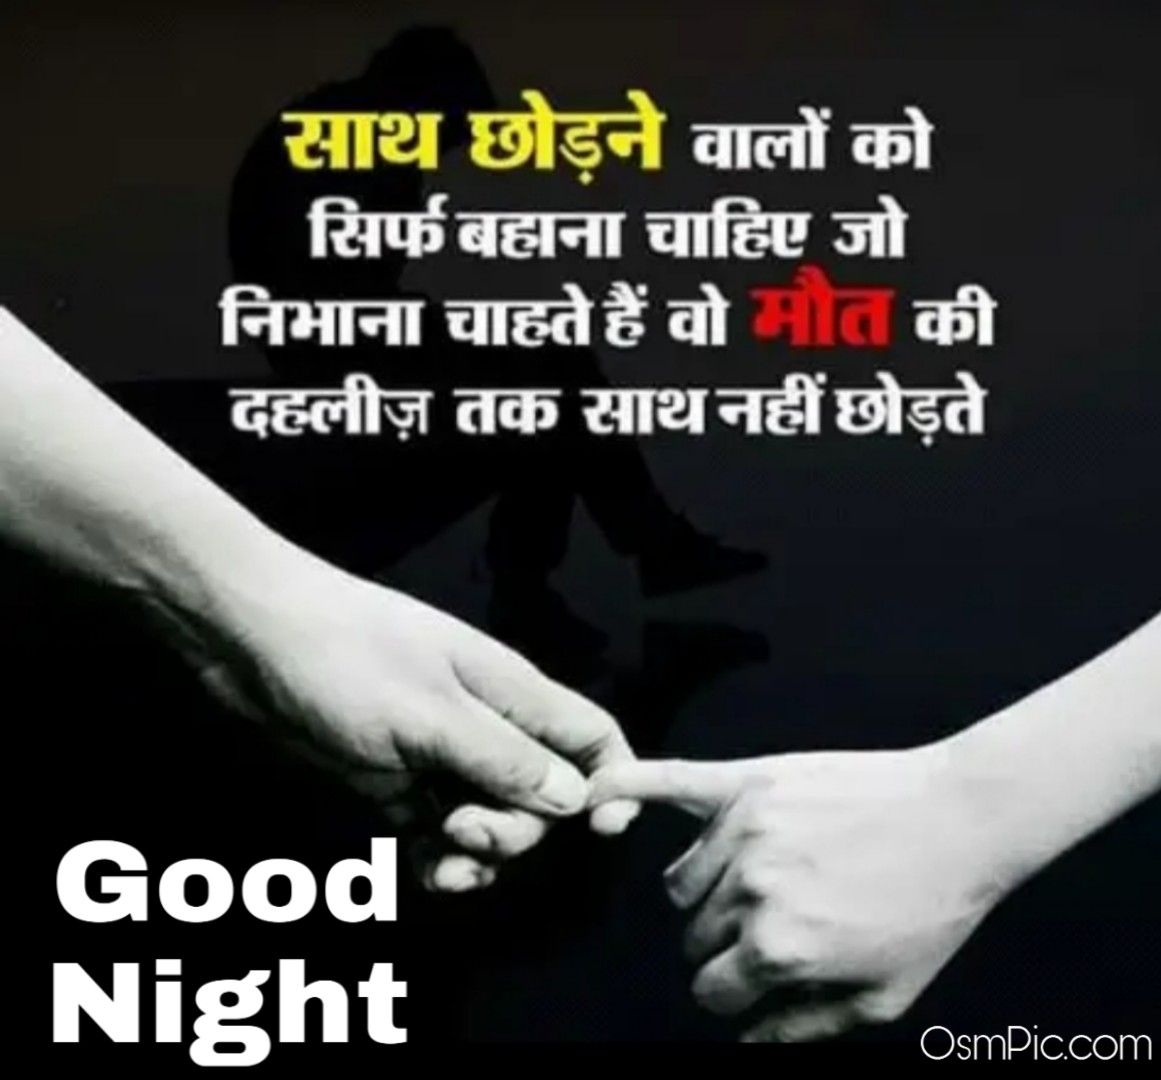 Download New And Awesome Good Night Hindi Images Pictures Photos For Whatsapp Fb With Quot Good Night Hindi Good Night Hindi Quotes Hindi Good Morning Quotes